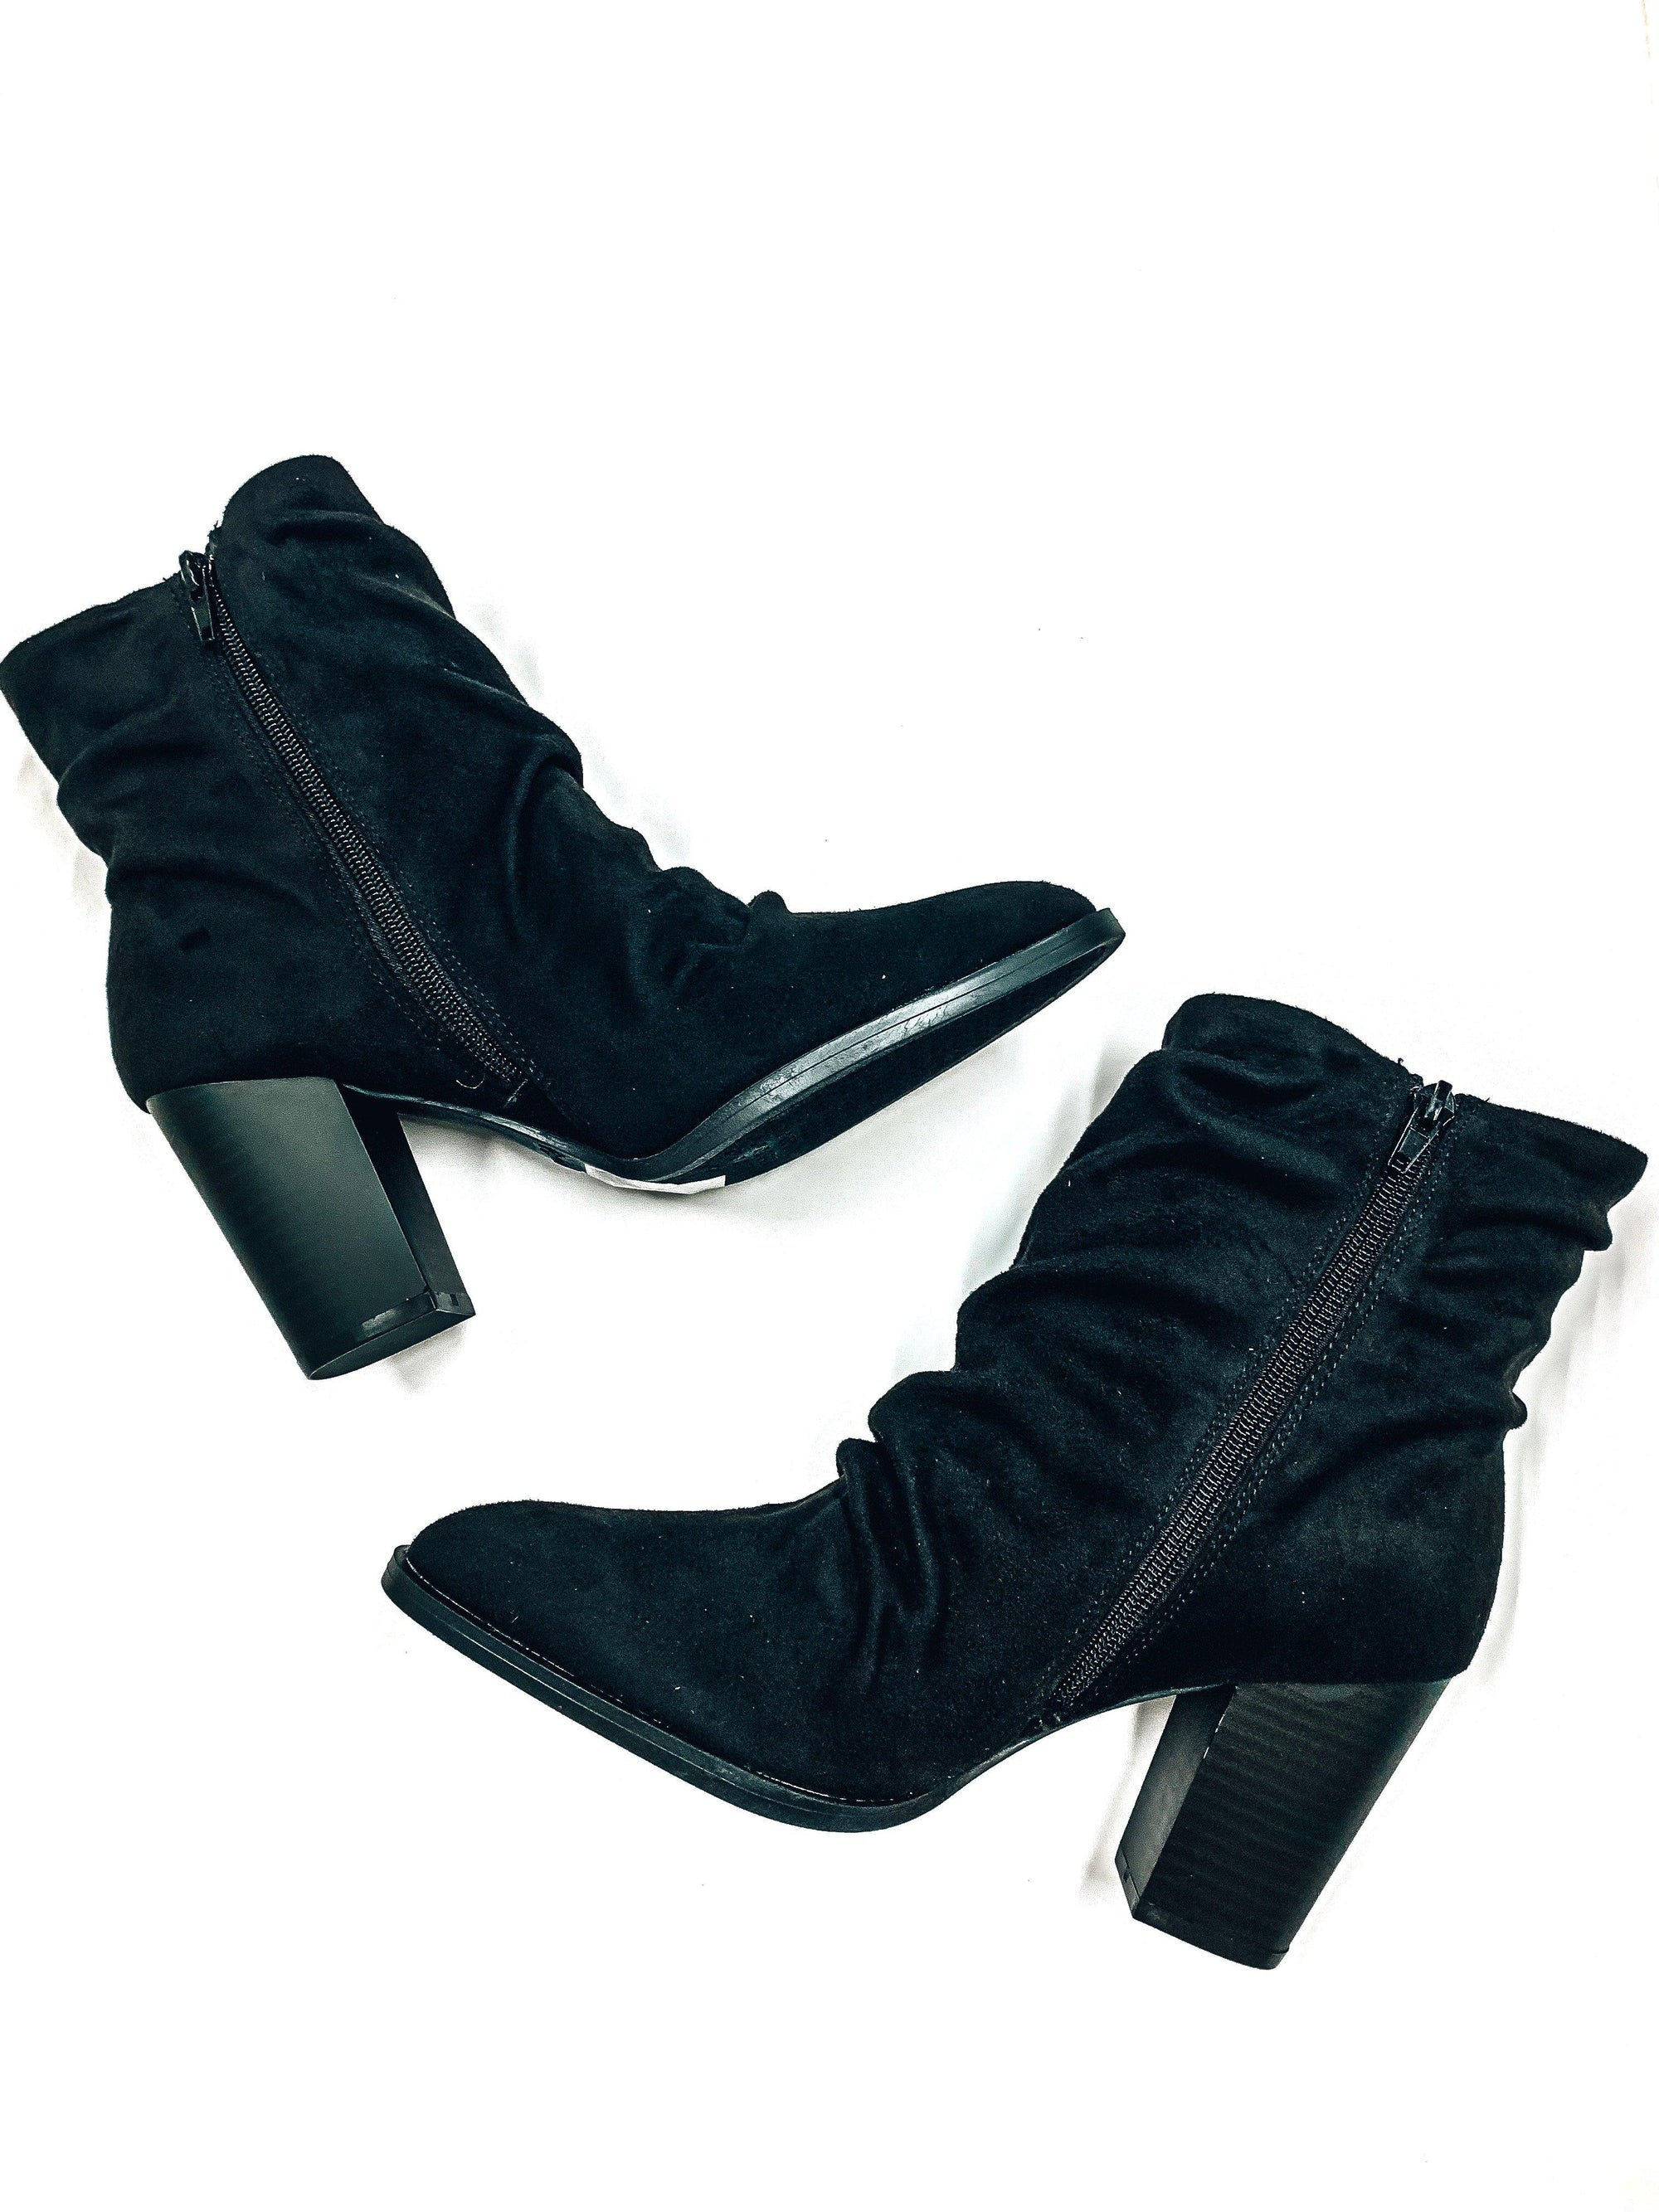 The Rose-Women's SHOES-New Arrivals-Runway Seven